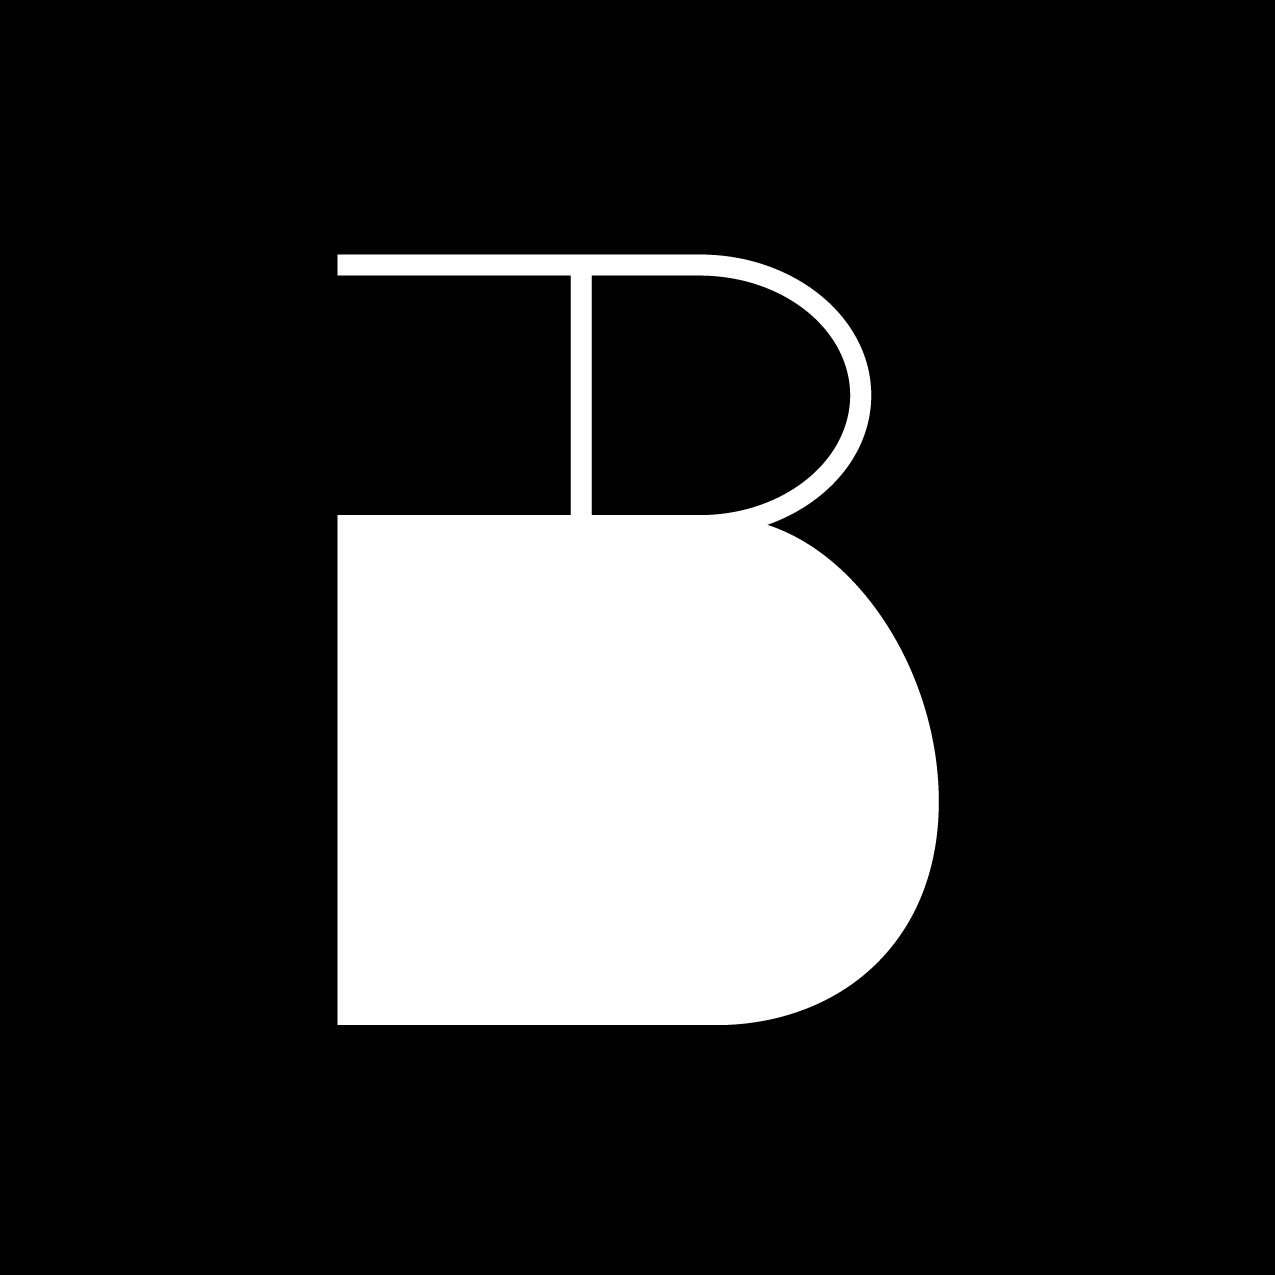 Letter B1 design by Furia